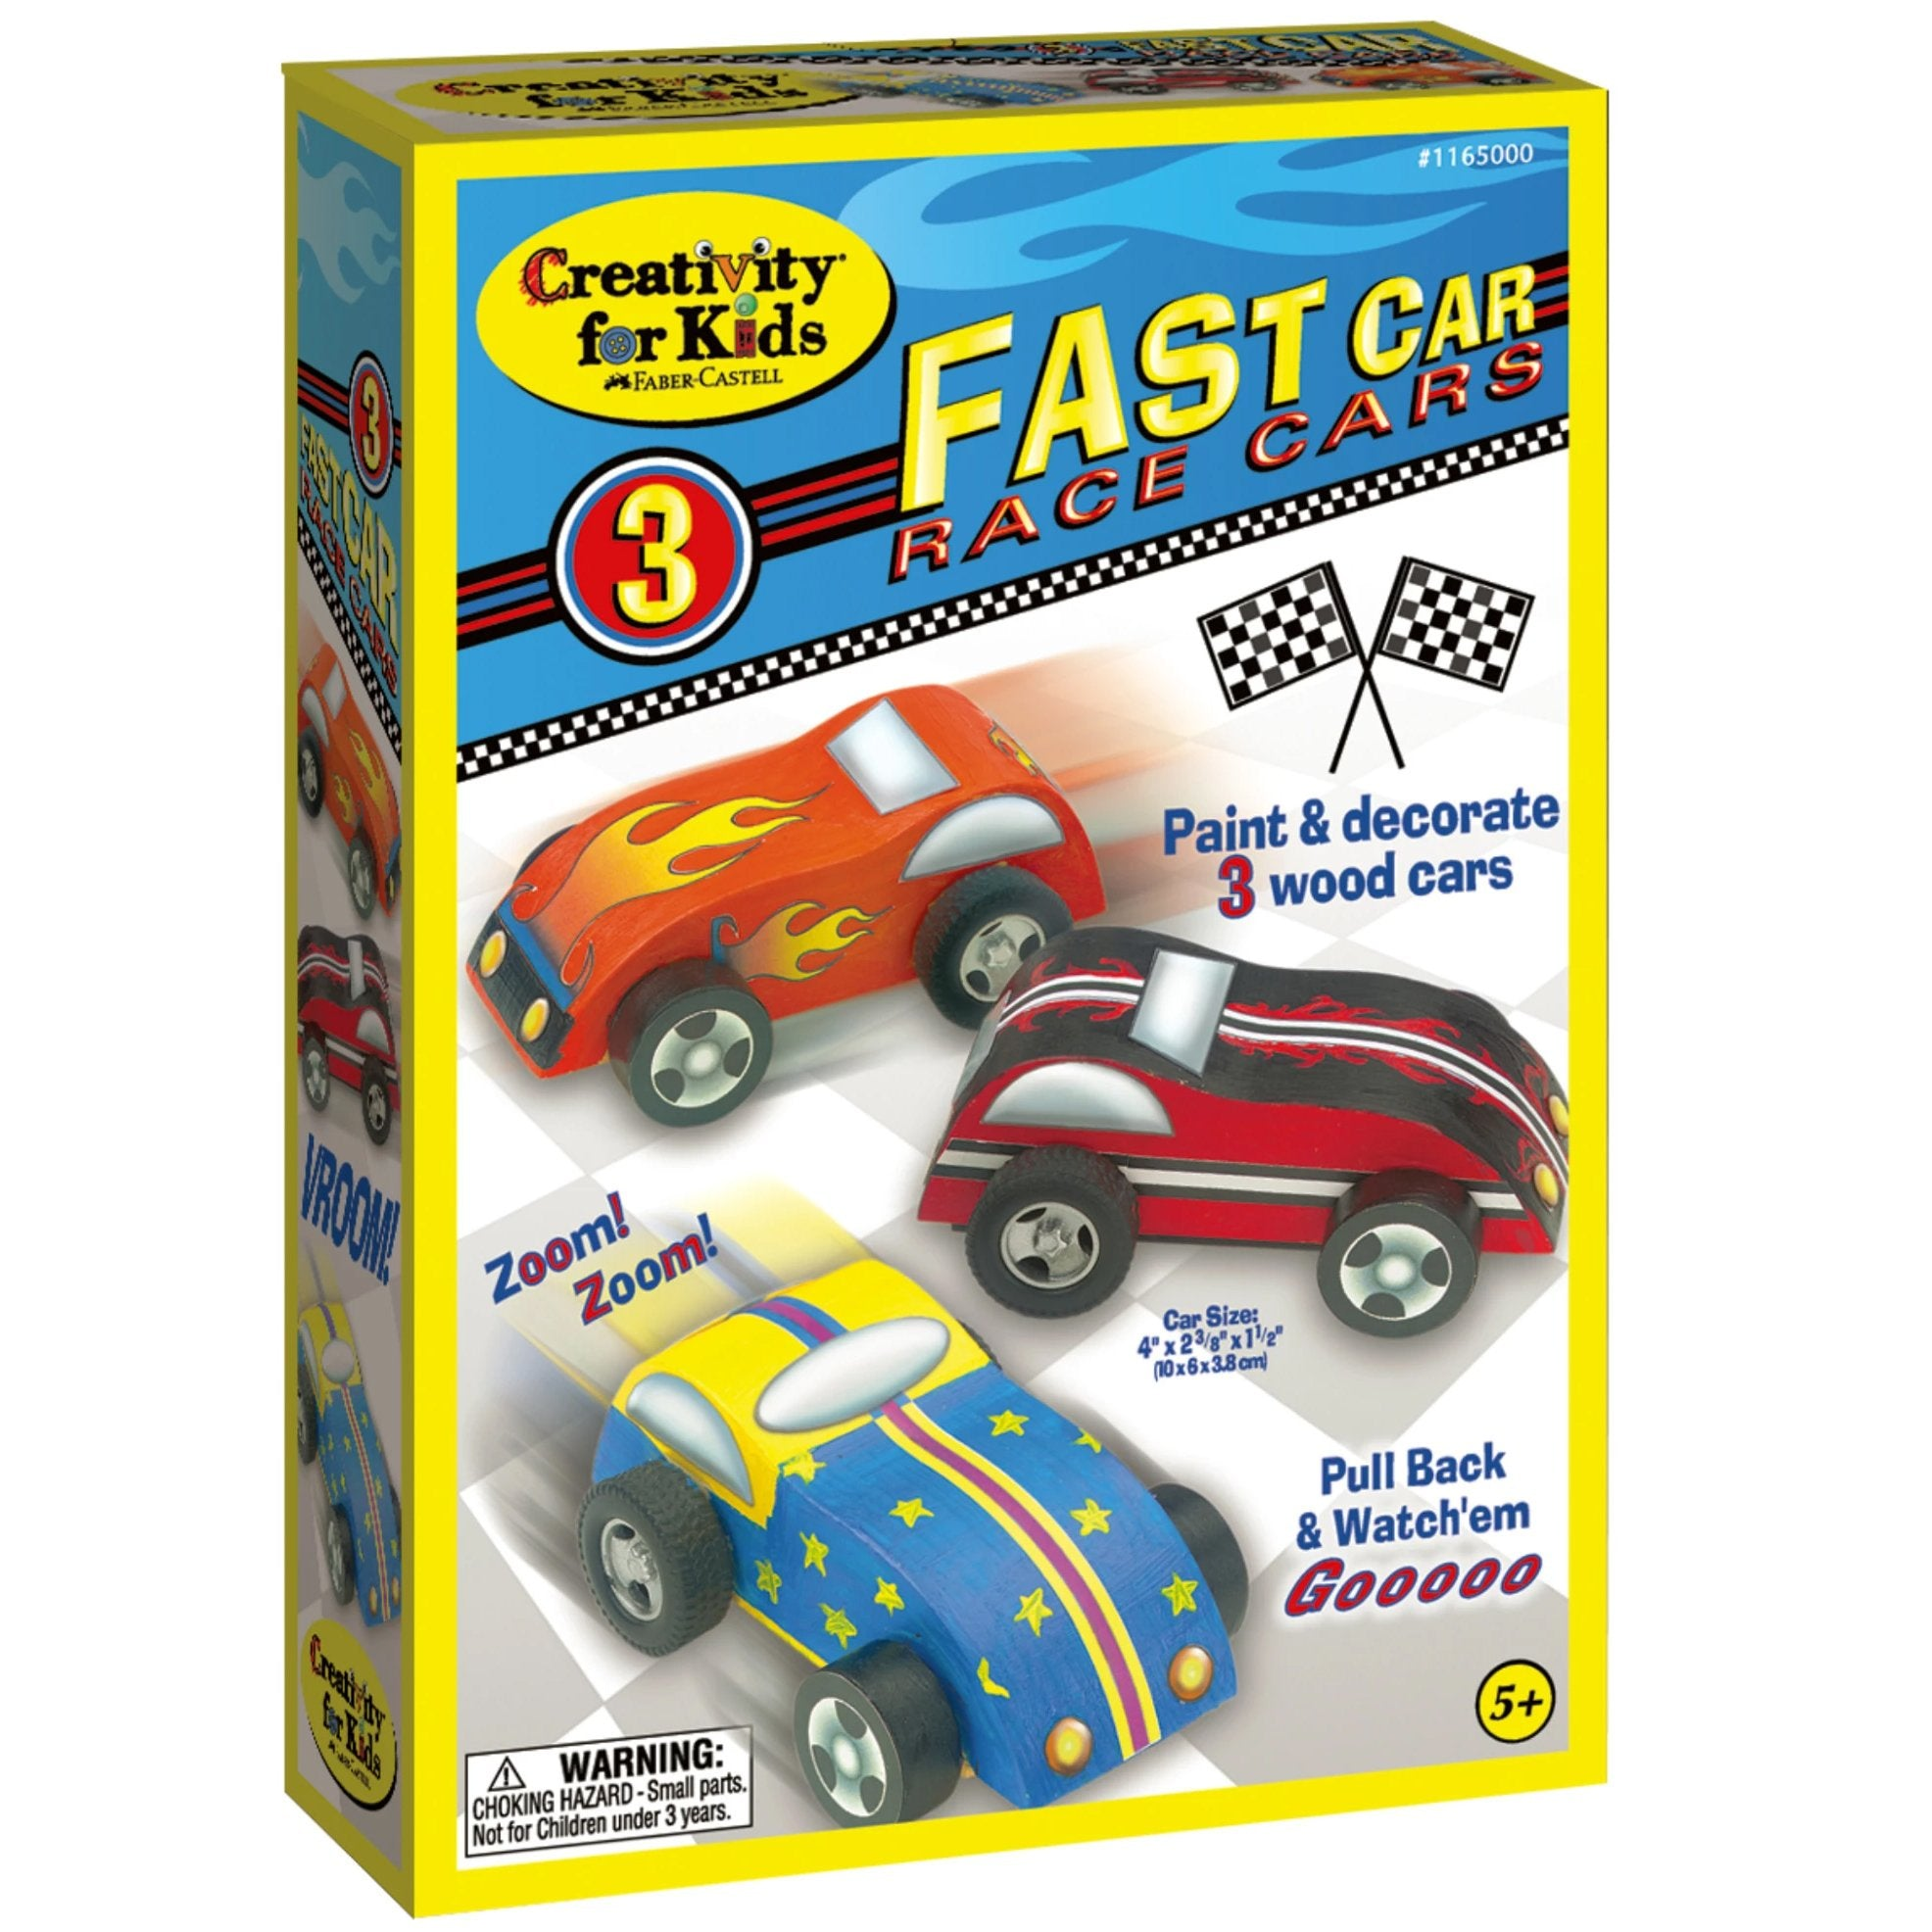 Creativity For Kids Fast Car Race Cars Craft Kits